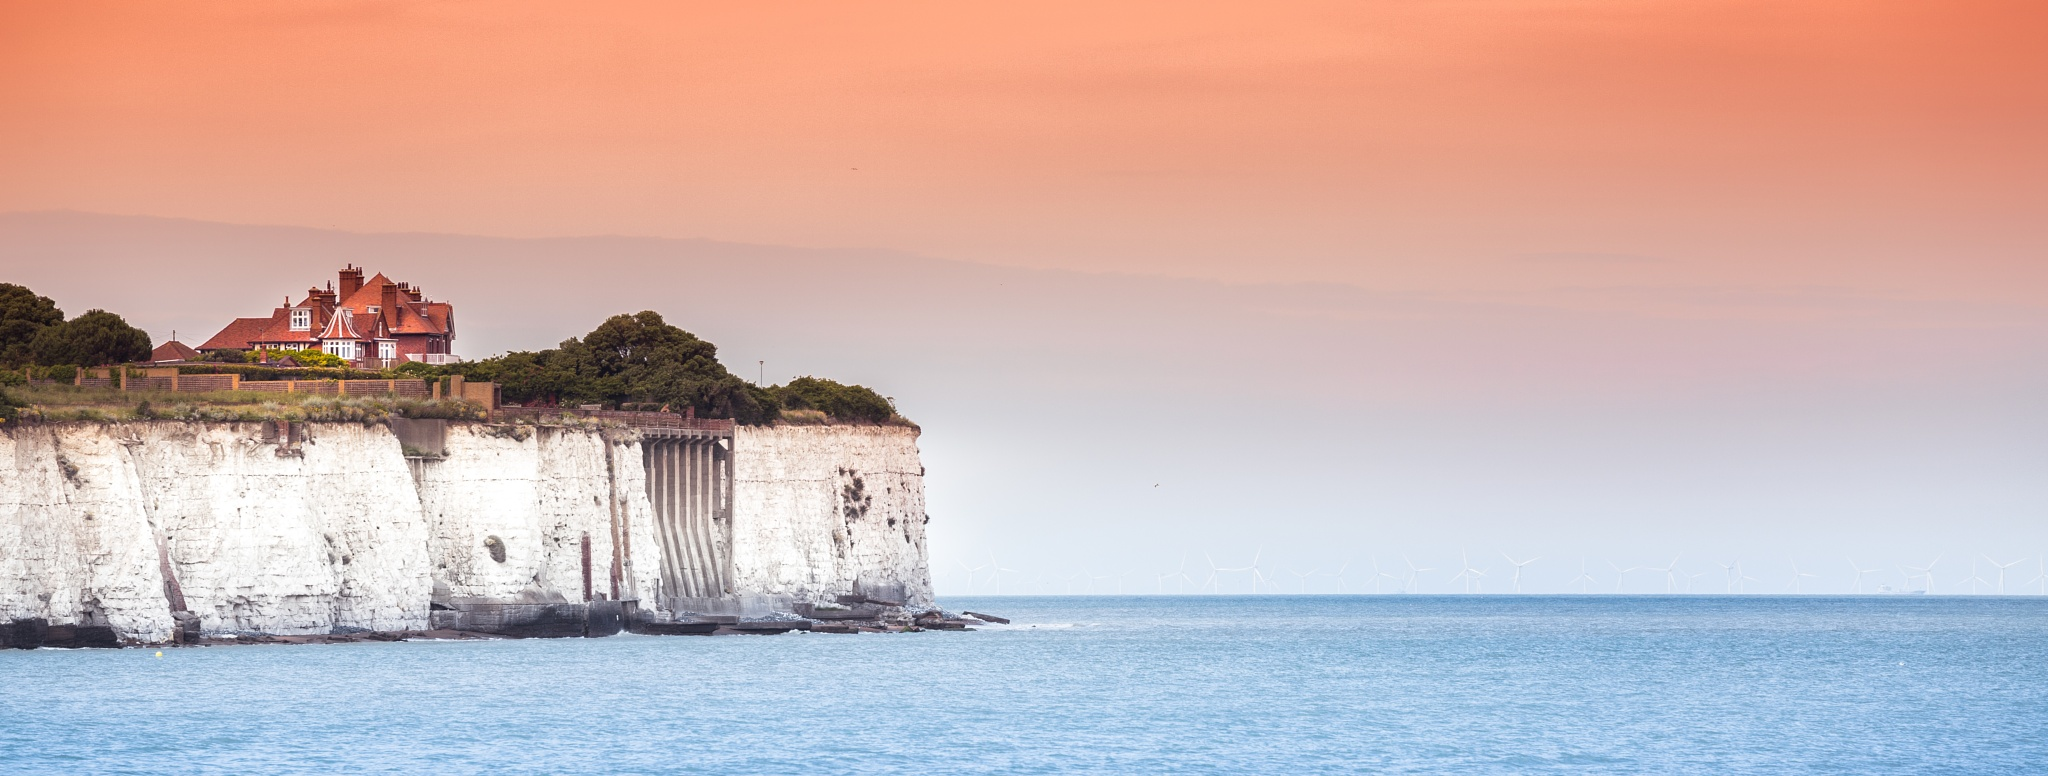 sunset on the cliffs by Tavi Ionescu